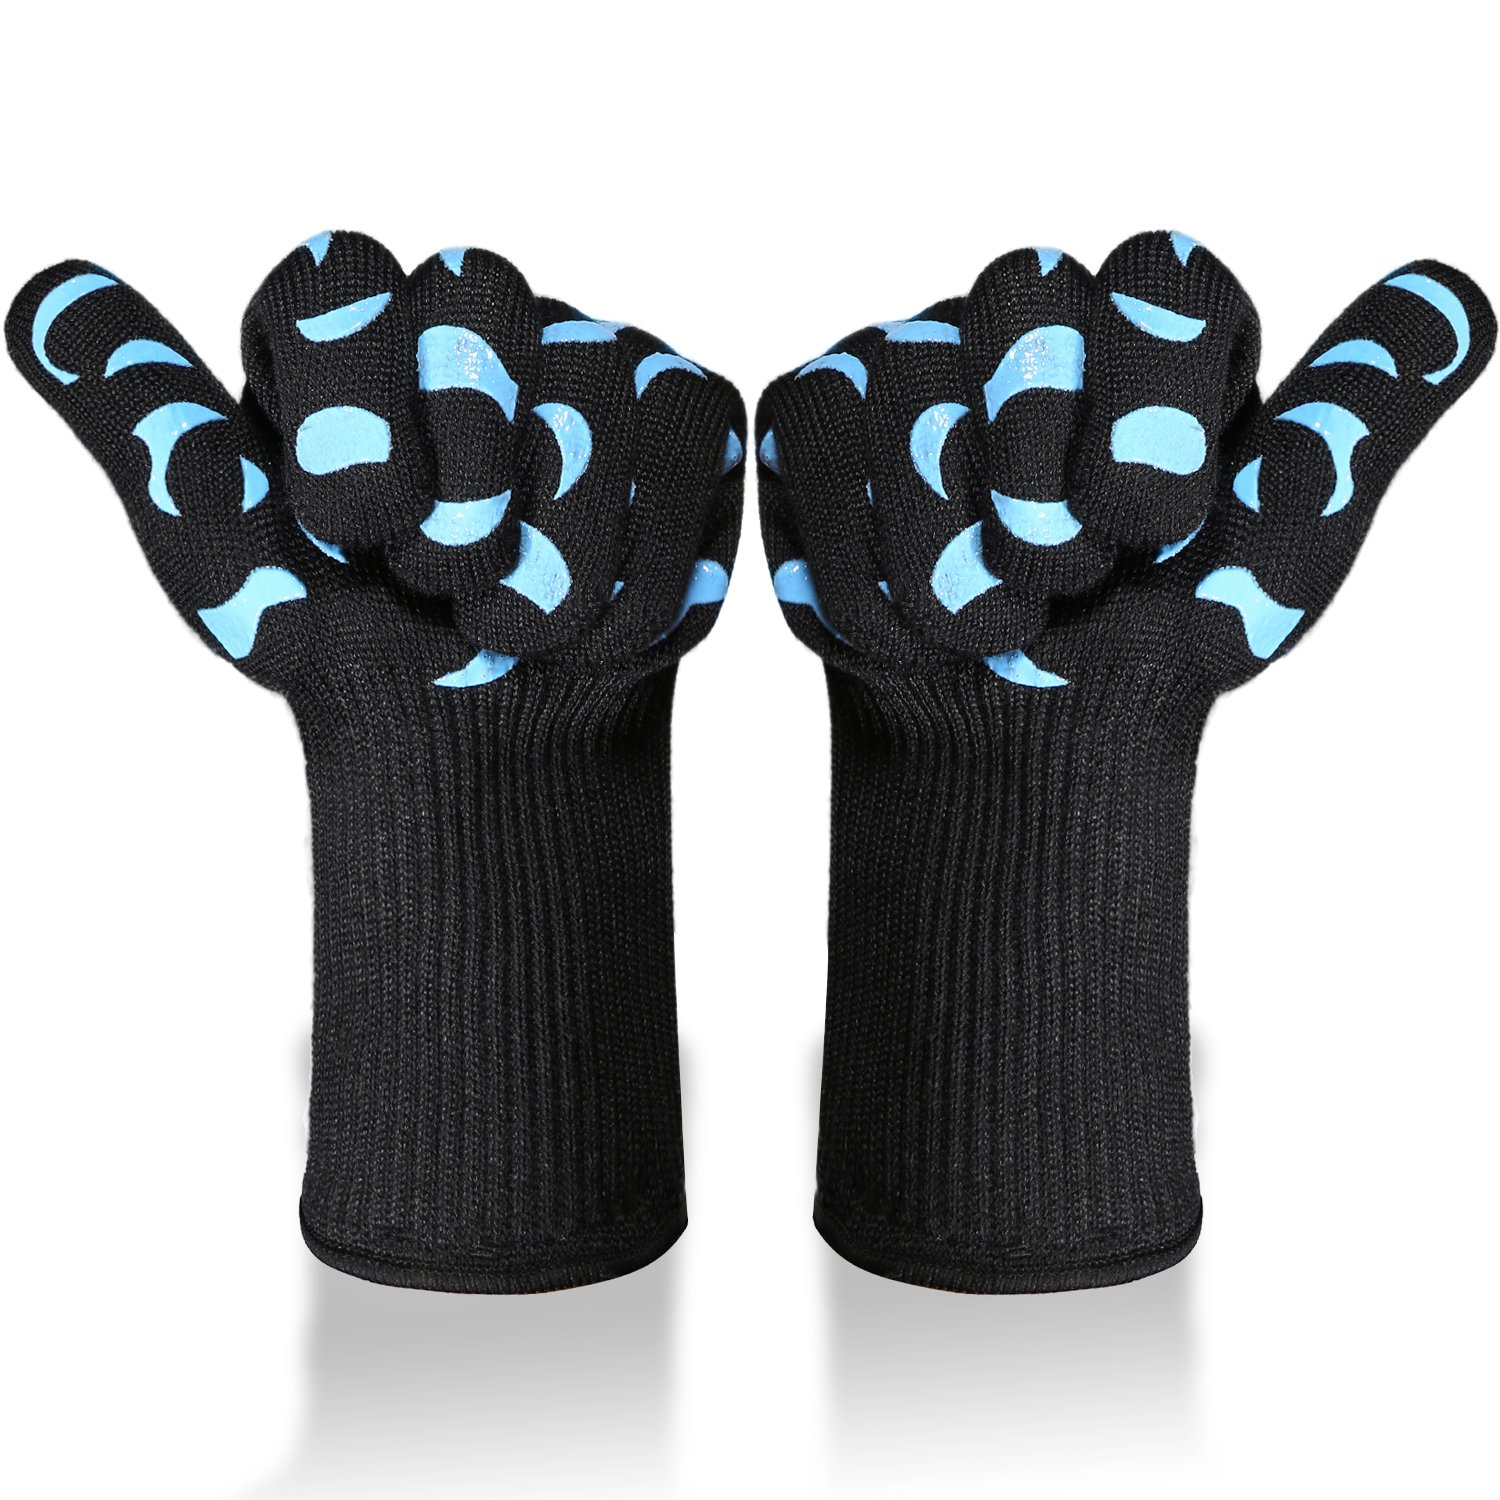 Tidinesslife Revolutionary 932°F Extreme Heat Resistant Certified Gloves - Thick but Light-Weight & Extra Long Blue